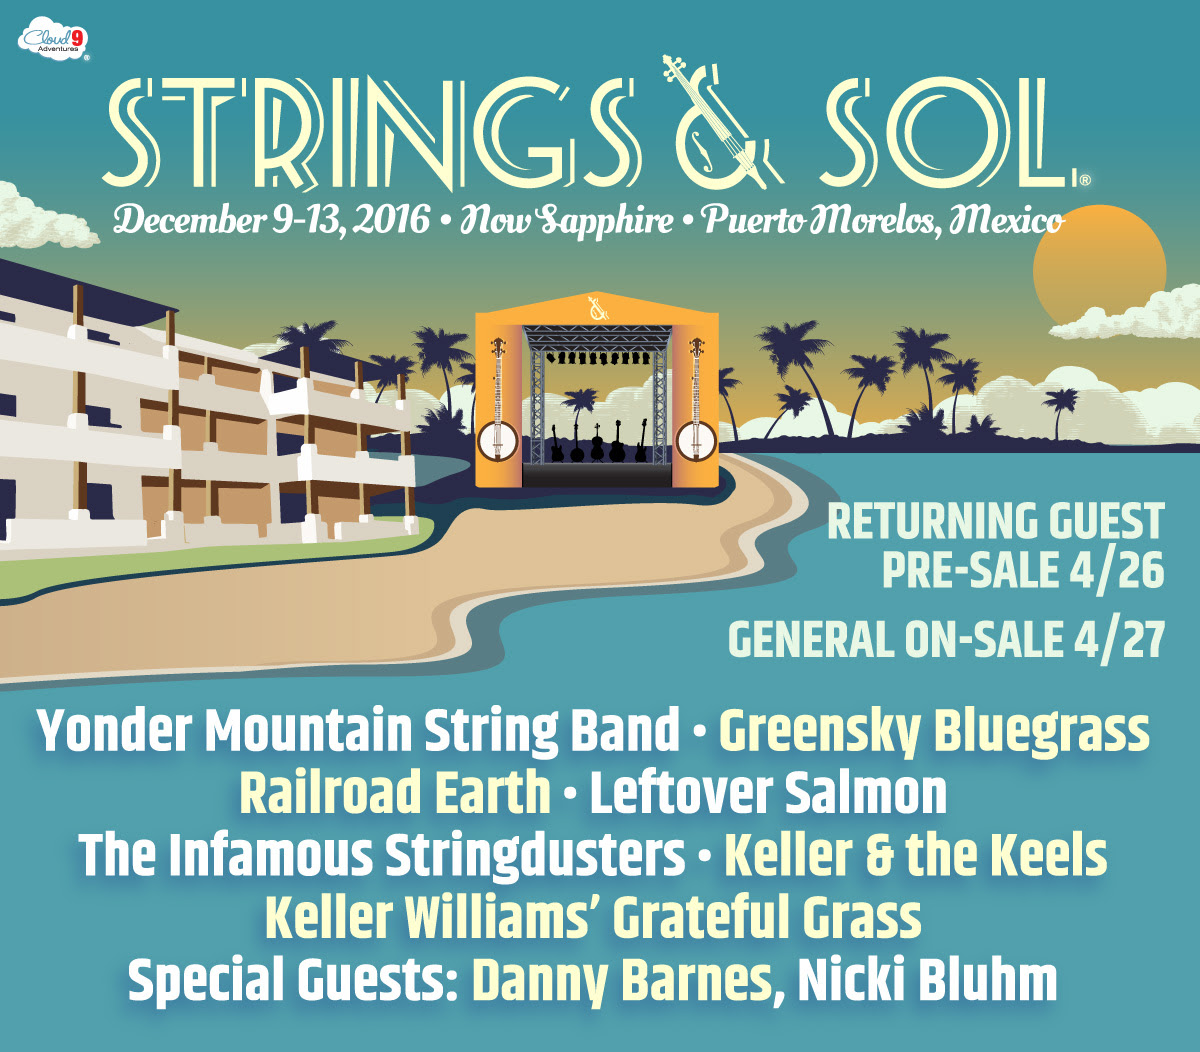 Strings & Sol 2016 acoustic lineup. Photo provided by: Strings & Sol